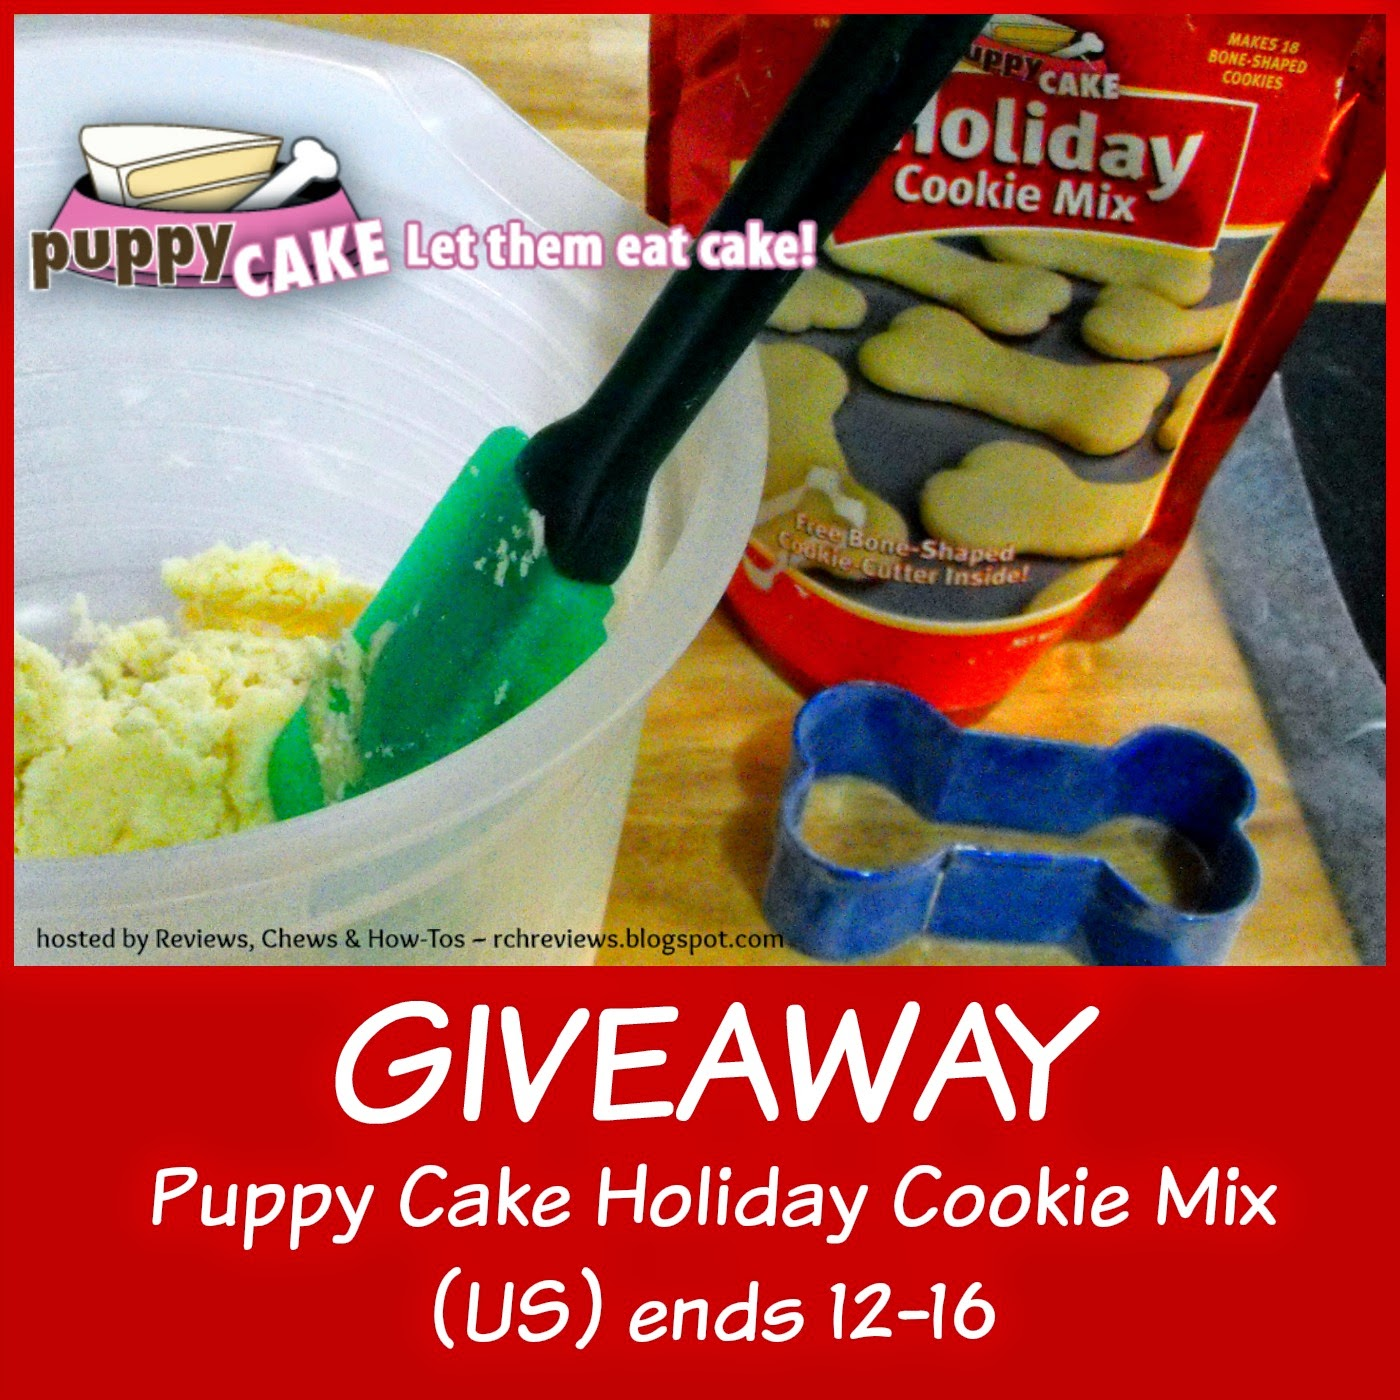 Reviews, Chews & How-Tos: Review and Giveaway: Puppy Cake ...